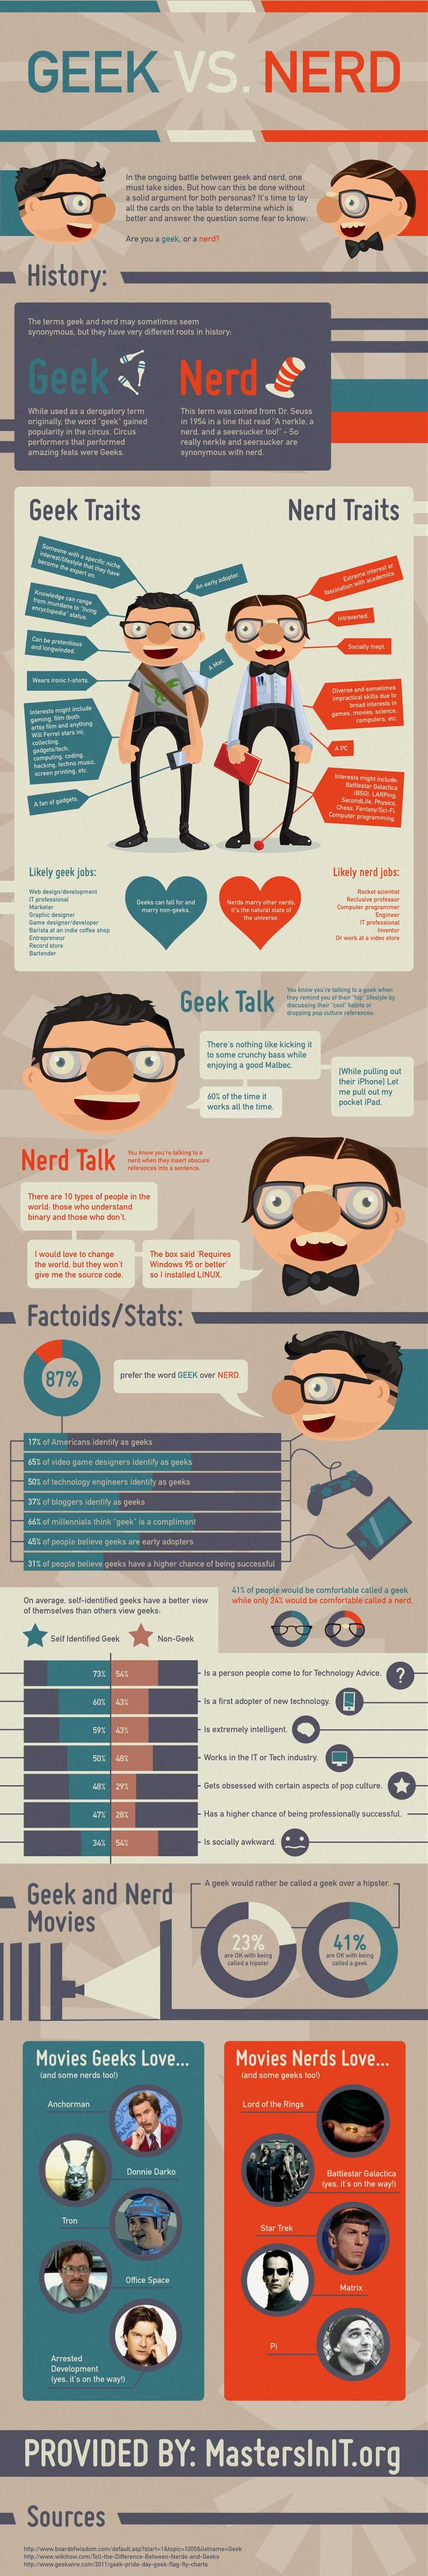 Geek vs Nerd Infographic by factfixx #Infographic #Geek #Nerd #factfixx